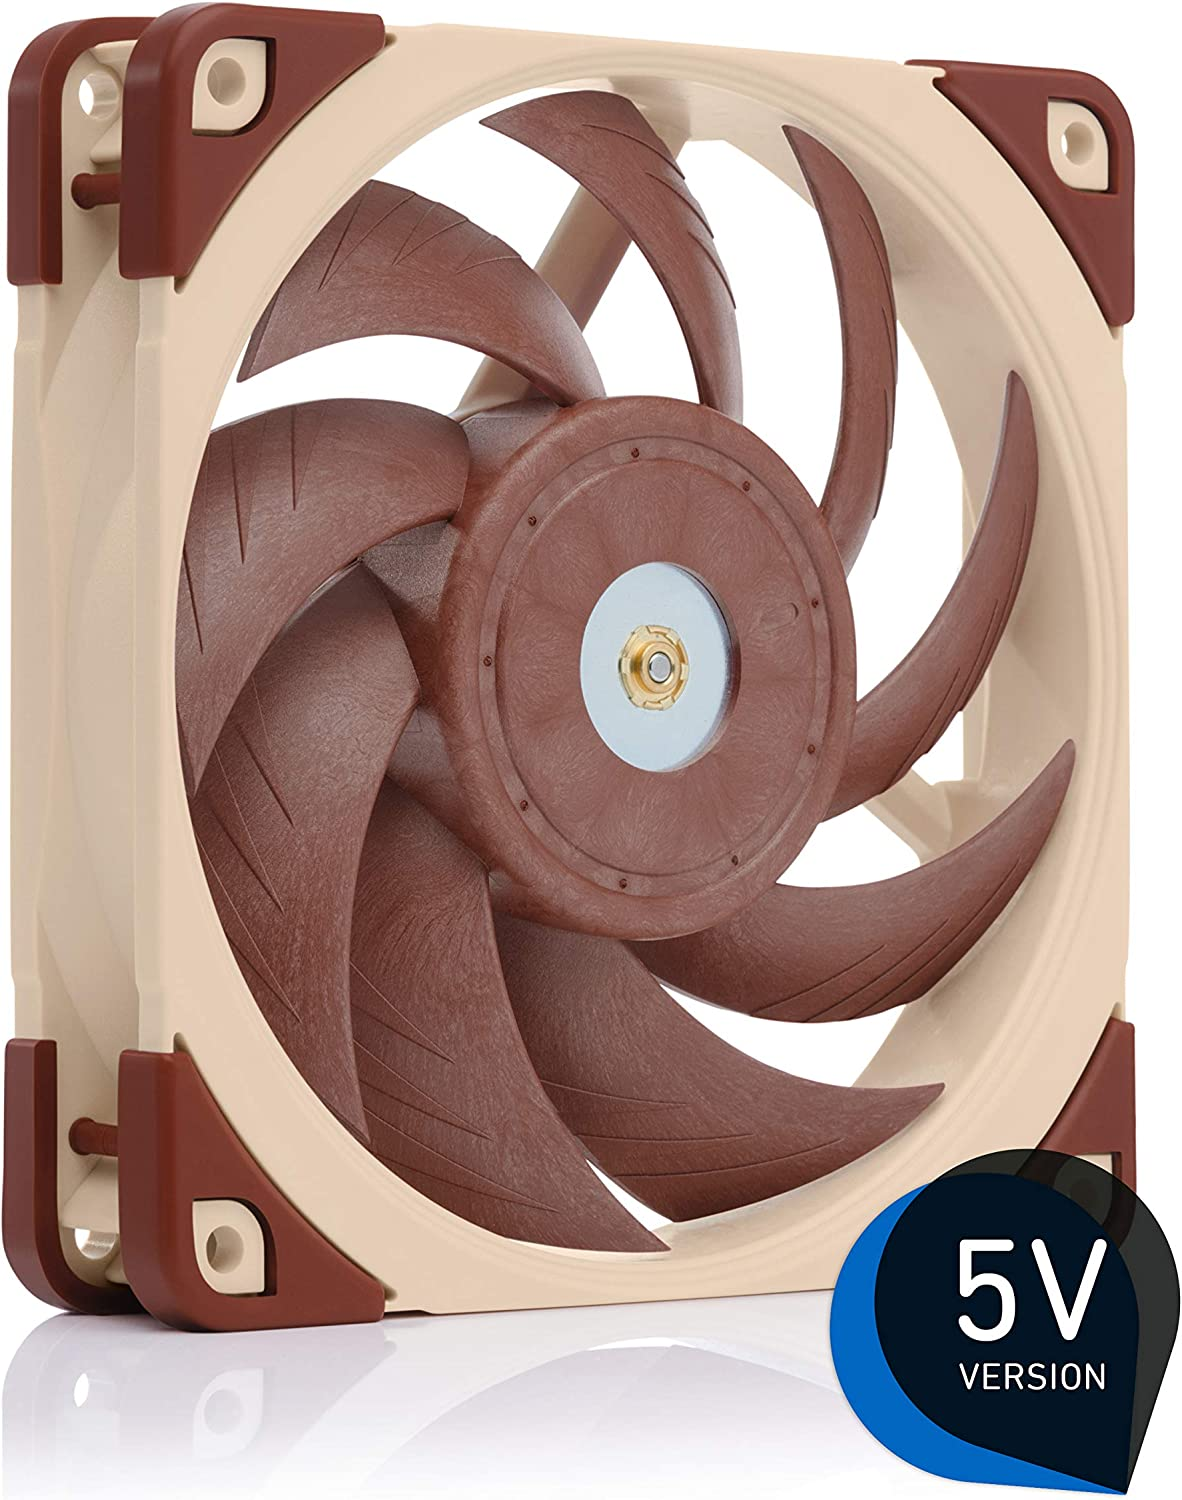 Noctua NF-A12x25 5V, Premium Quiet Fan with USB Power Adaptor Cable, 3-Pin, 5V Version (120mm, Brown)